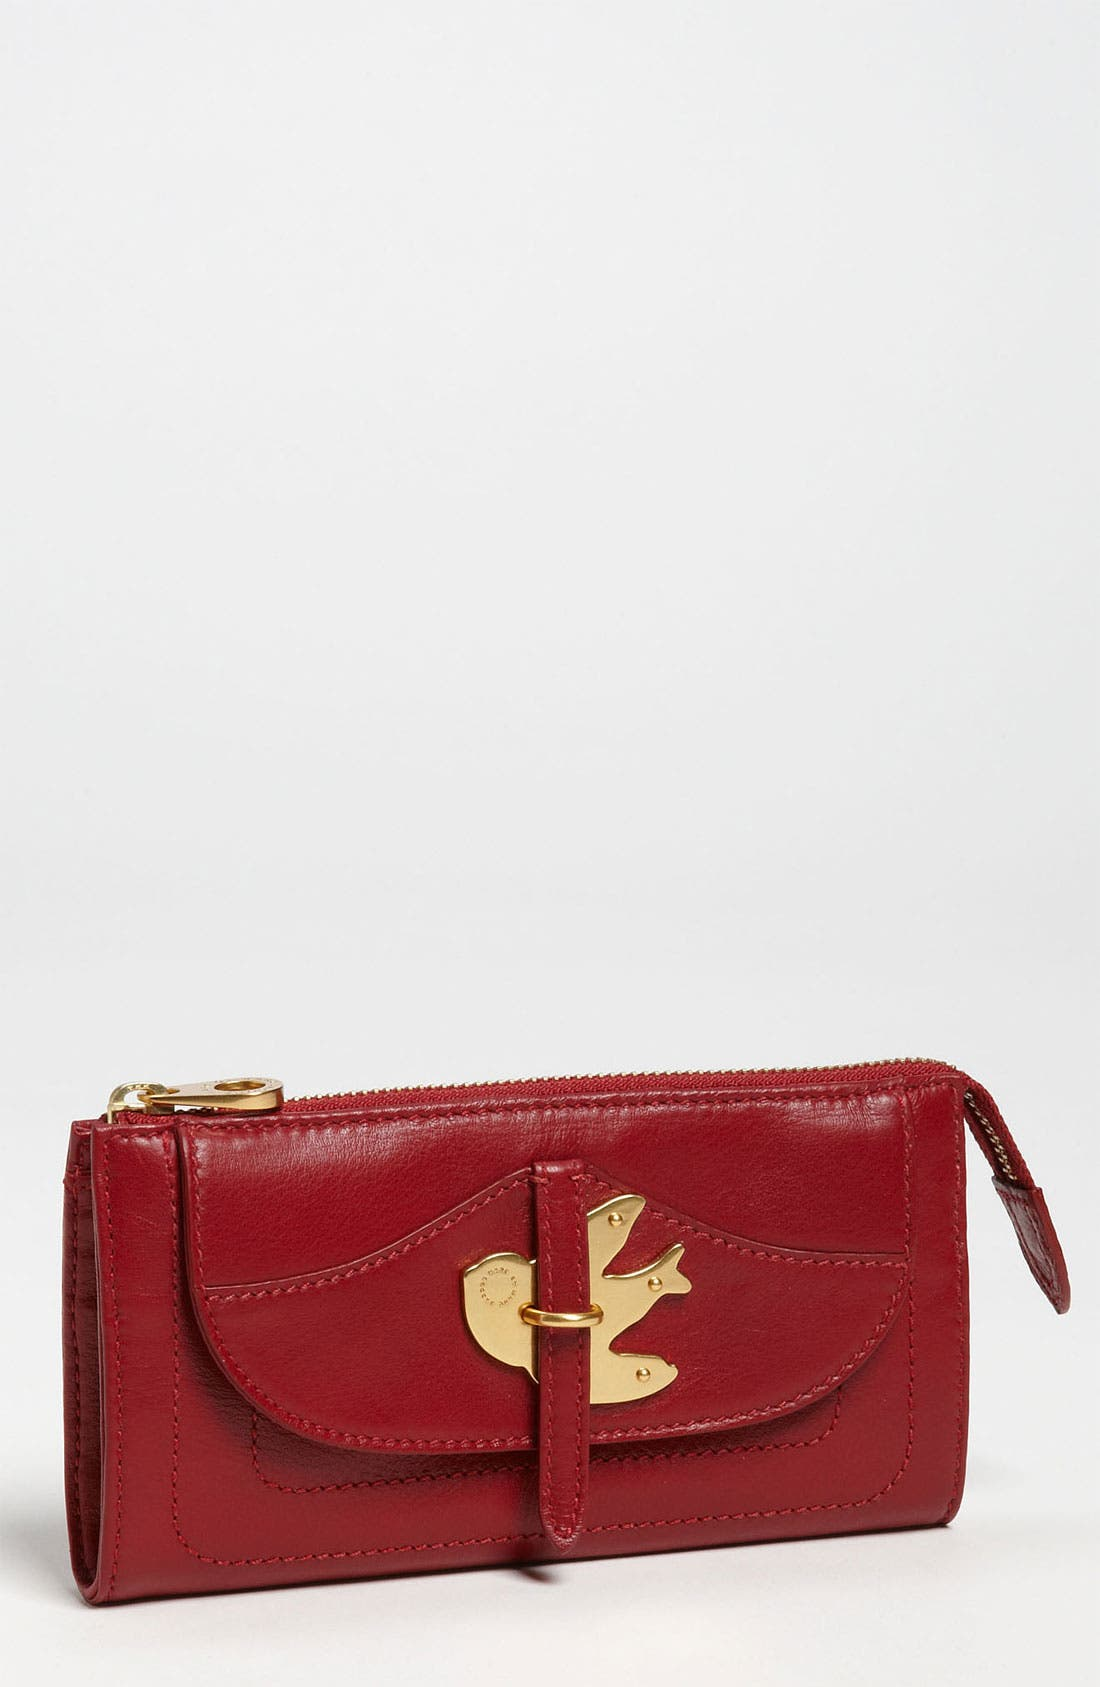 Main Image - MARC BY MARC JACOBS 'Petal to the Metal' Zip Clutch Wallet